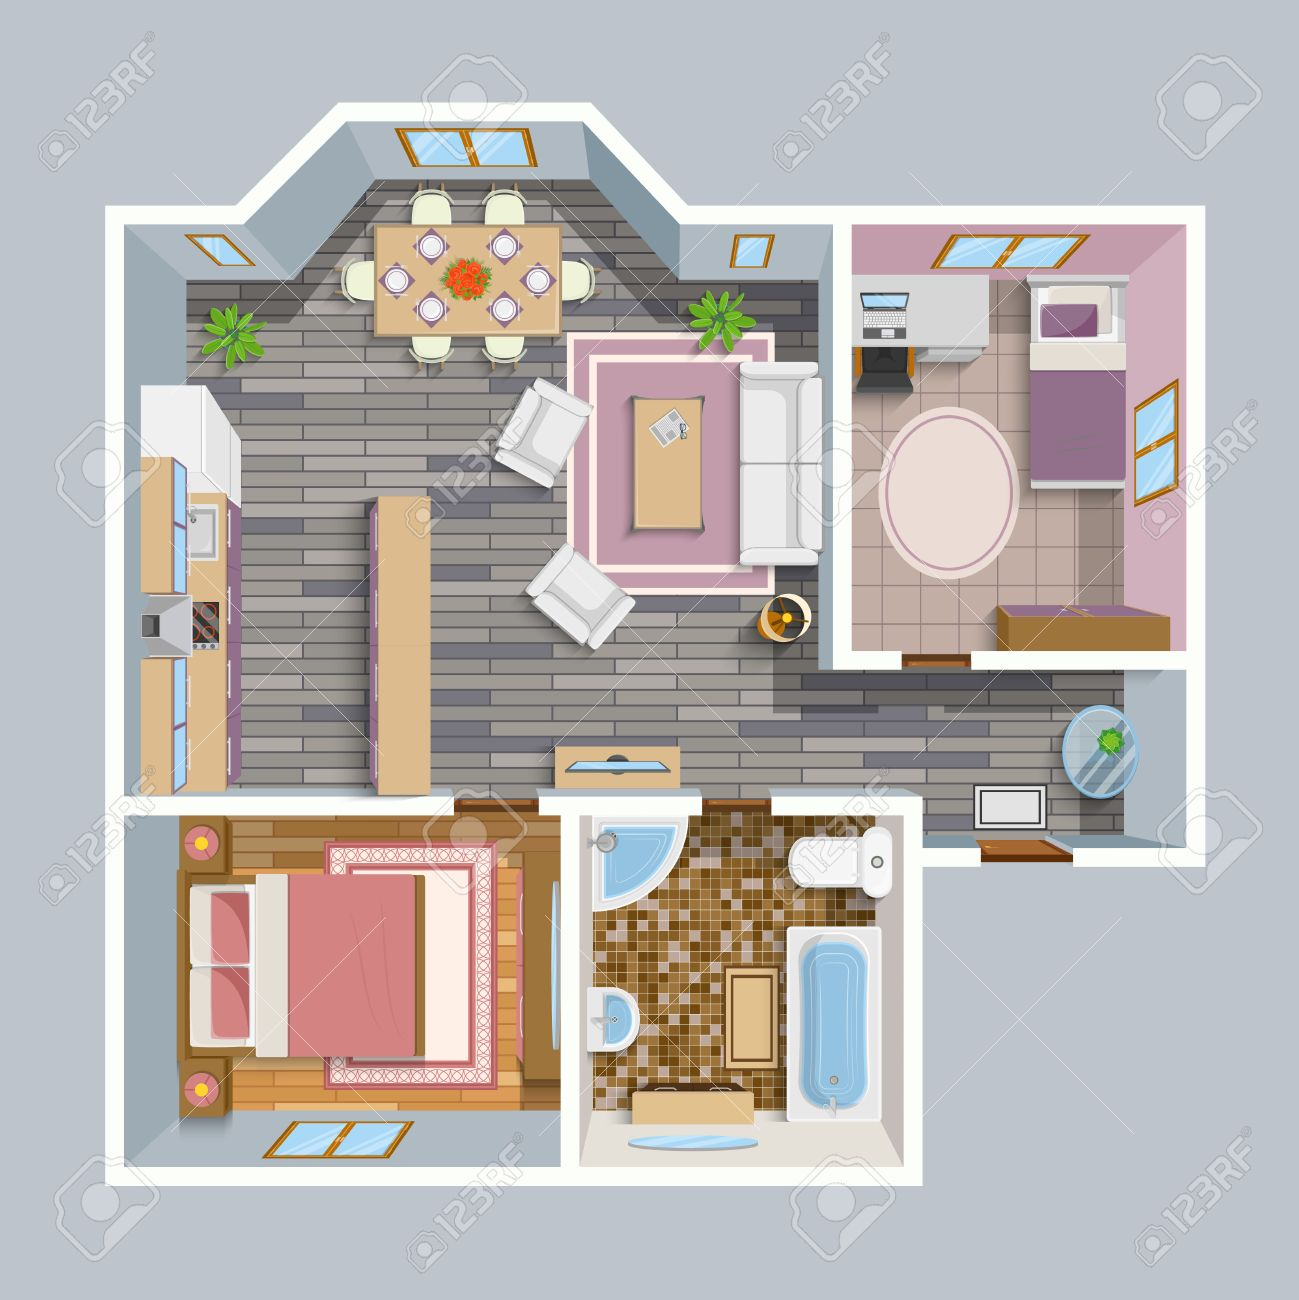 architectural flat plan top view with living rooms bathroom architectural flat plan top view with living rooms bathroom kitchen and lounge furniture vector illustration stock